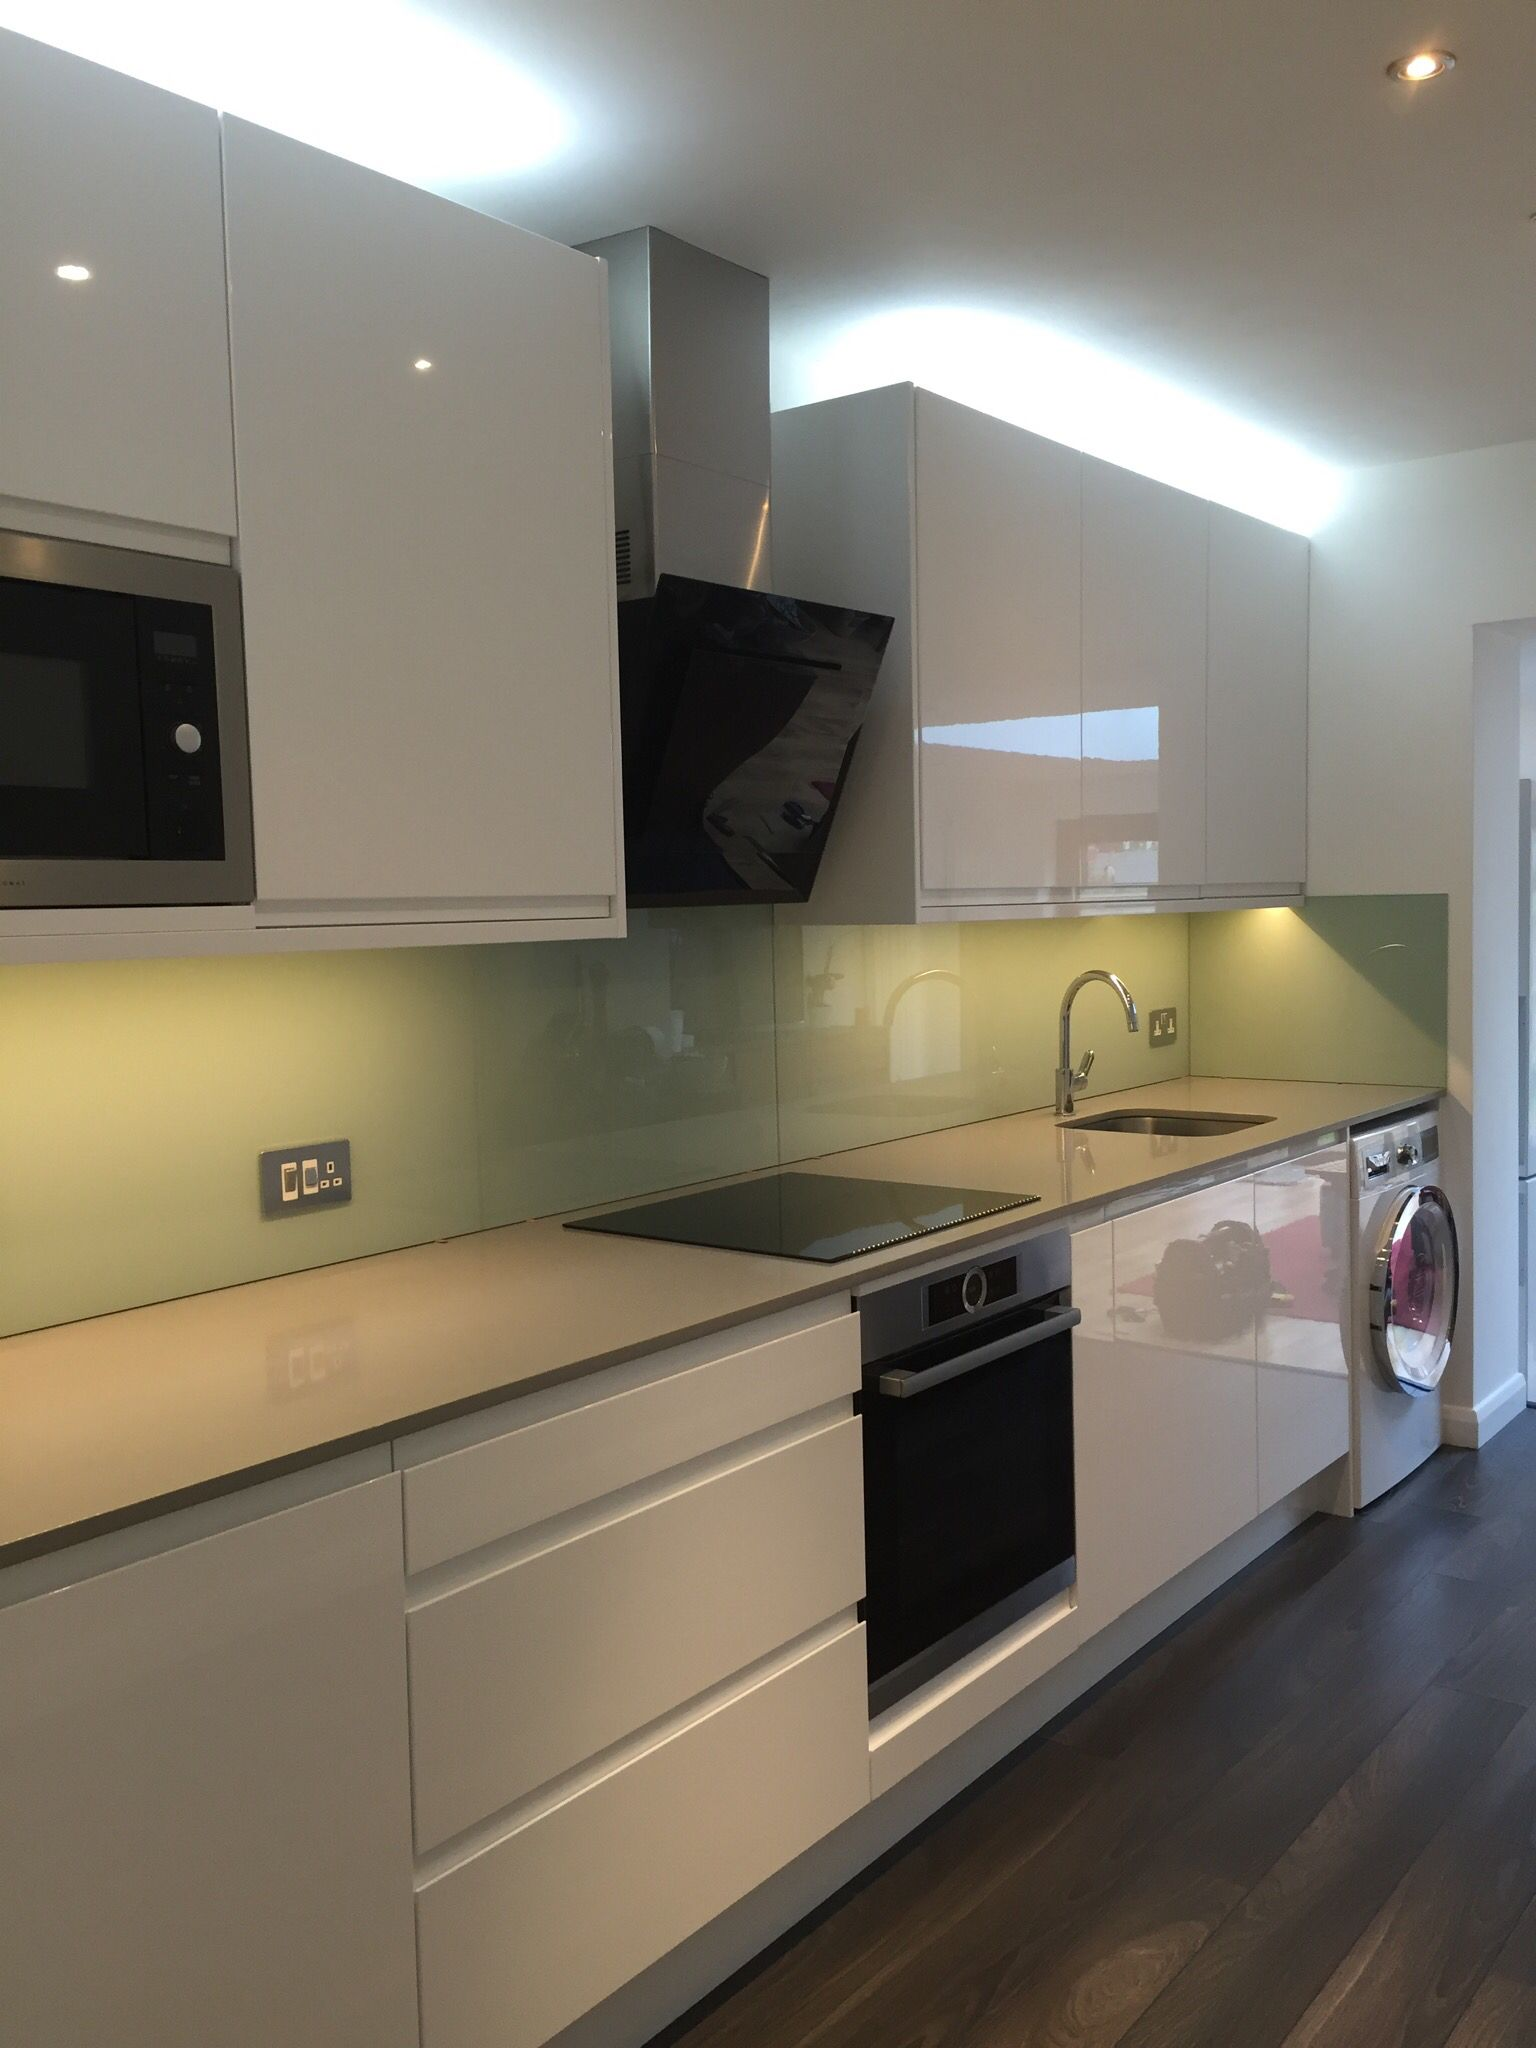 Silestone Kensho Quartz Glass splashback White kitchen | Homeeeeee ...